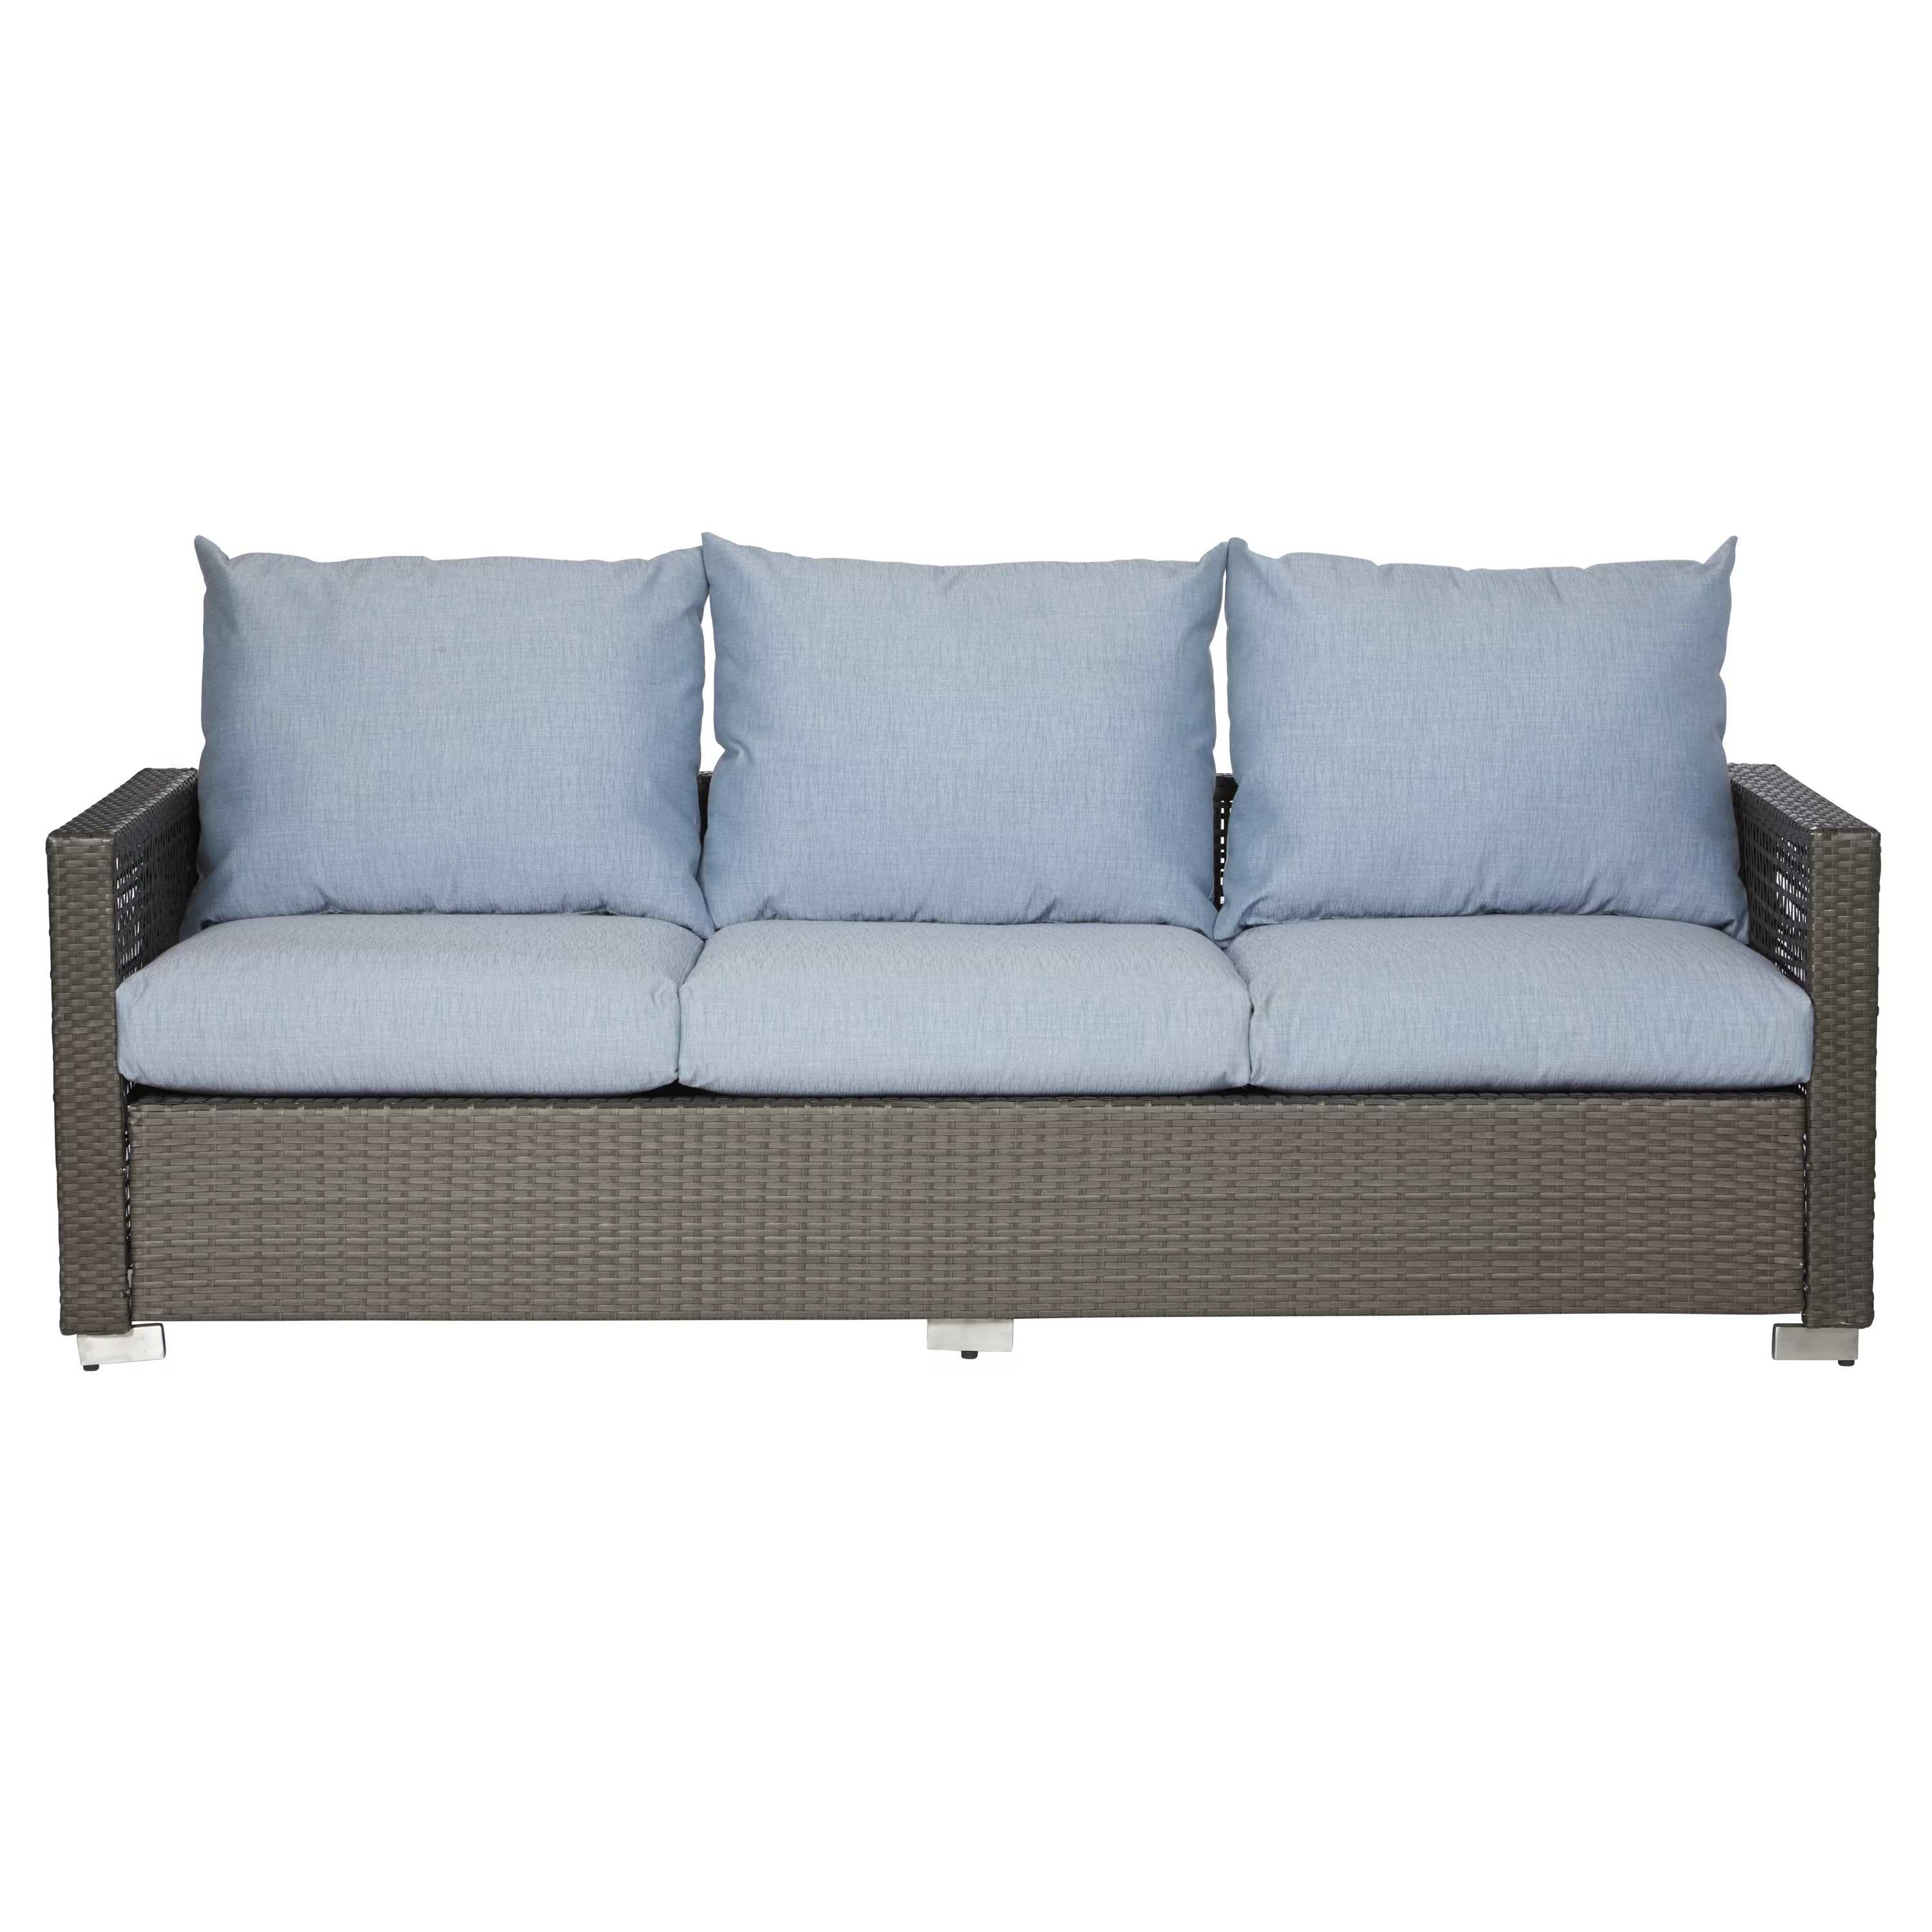 Open Weave Rattan Sofa Mid Century Lawson Sofa By Birch Lane Baci Living Room